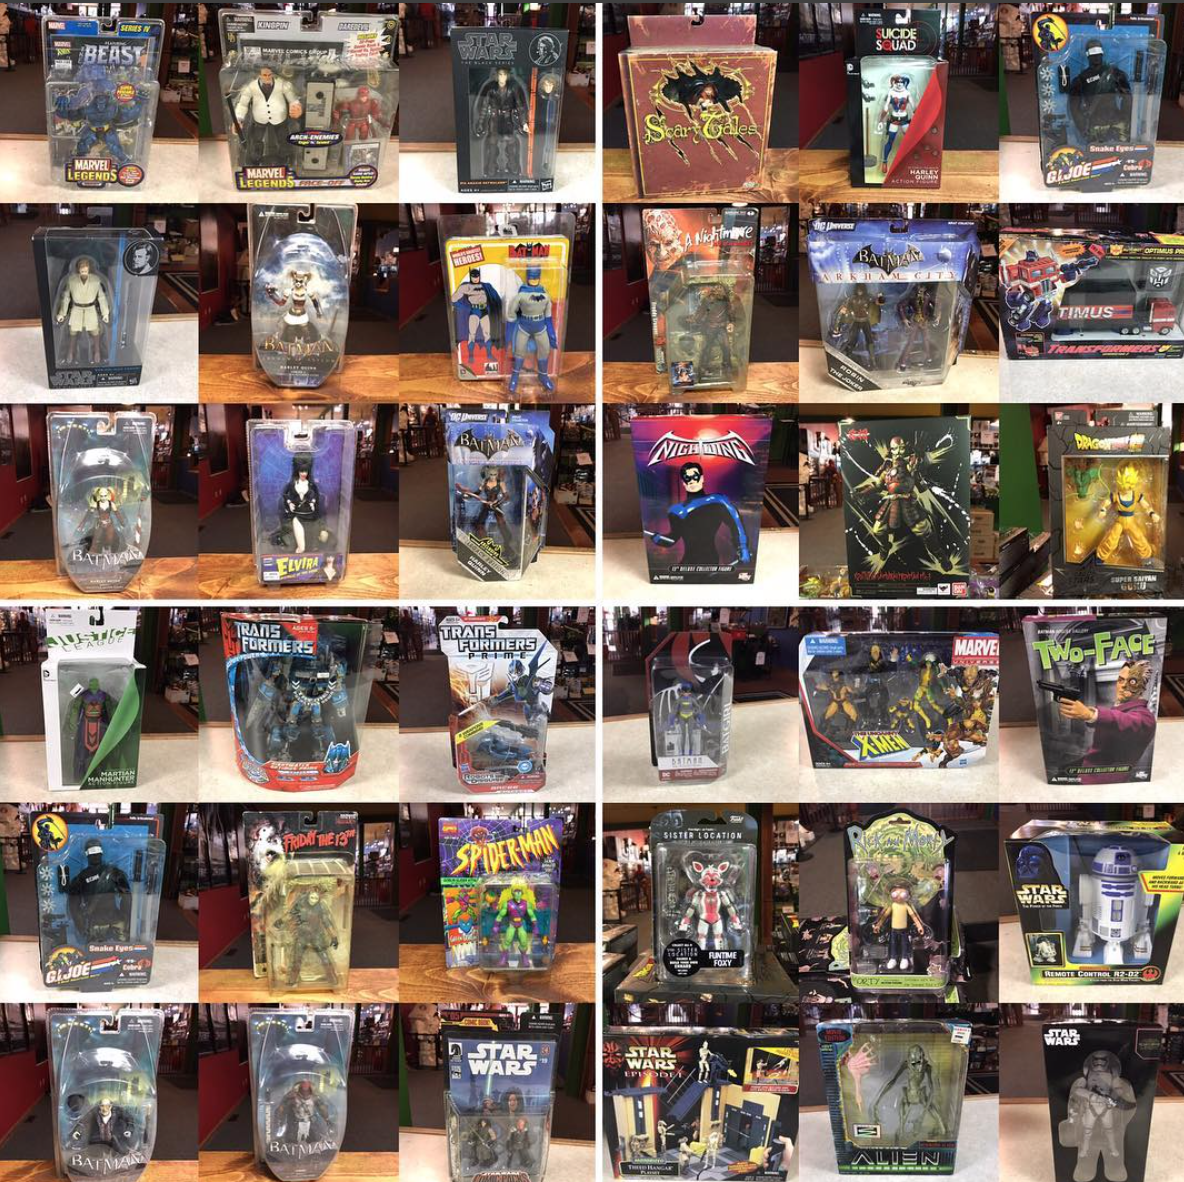 Kokomo Toys eBay Store Update – New Arrivals On Vintage Marvel Legends, DC & More